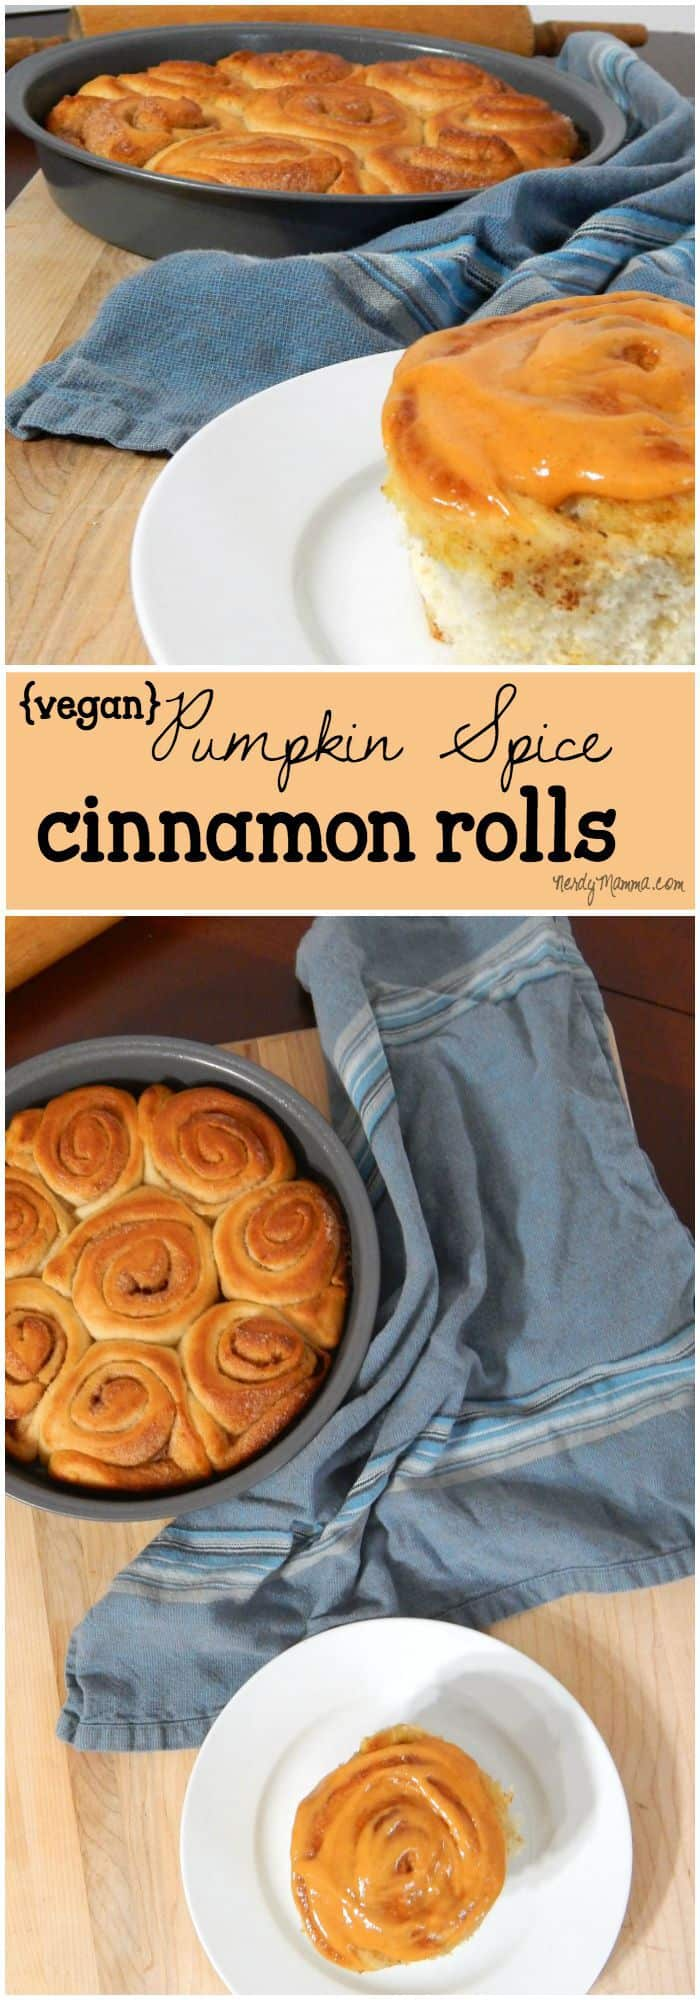 These homemade pumpkin spice cinnamon rolls are so easy to make--and ridiculously yummy. I will NEVER buy store-bought cinnamon rolls again.